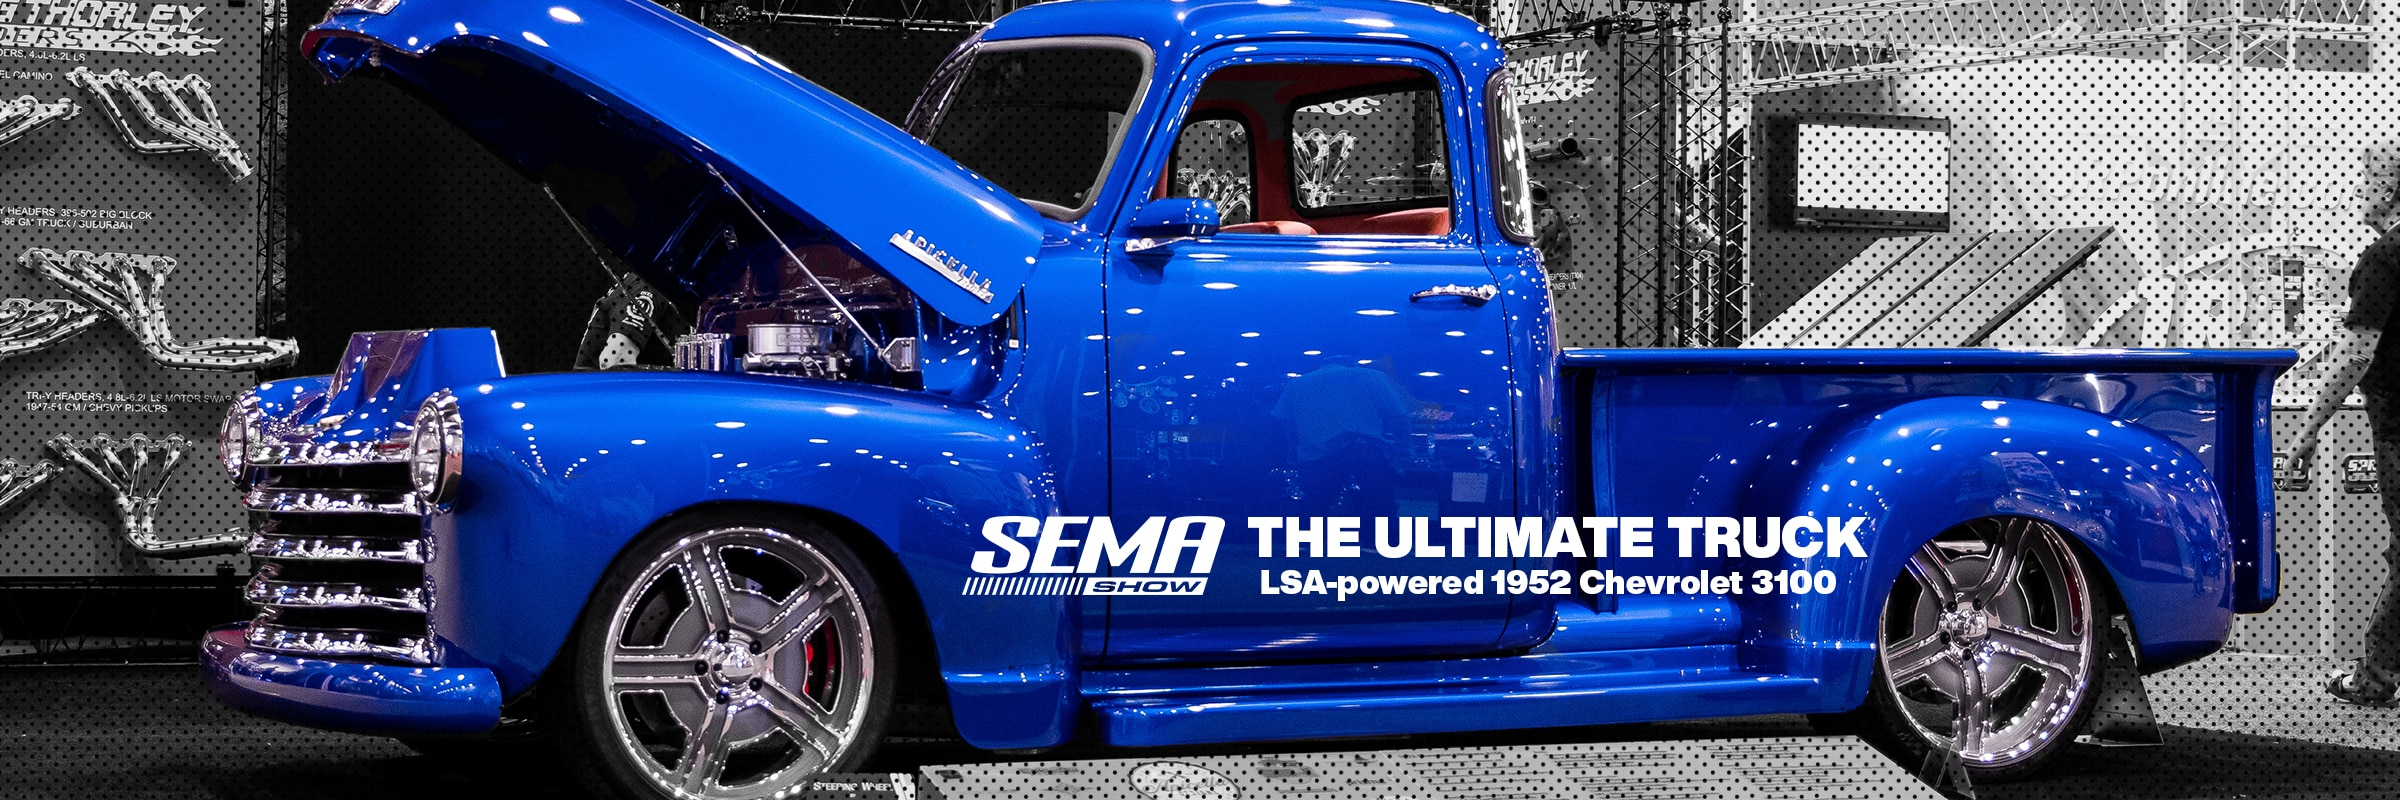 Vehicles, Parts, Chevrolet Performance, Chevy, Chevrolet, Parts, LSA, LSA Crate Engine, Supercharged, Supercharged Engines, Crate Engines, Engines, Chevy Trucks, Chevrolet Ultimate 3100, 1952 Chevy 3100, Apicella Designs, Premier Street Rod, Chevy SEMA, SEMA, SEMA Show, Las Vegas